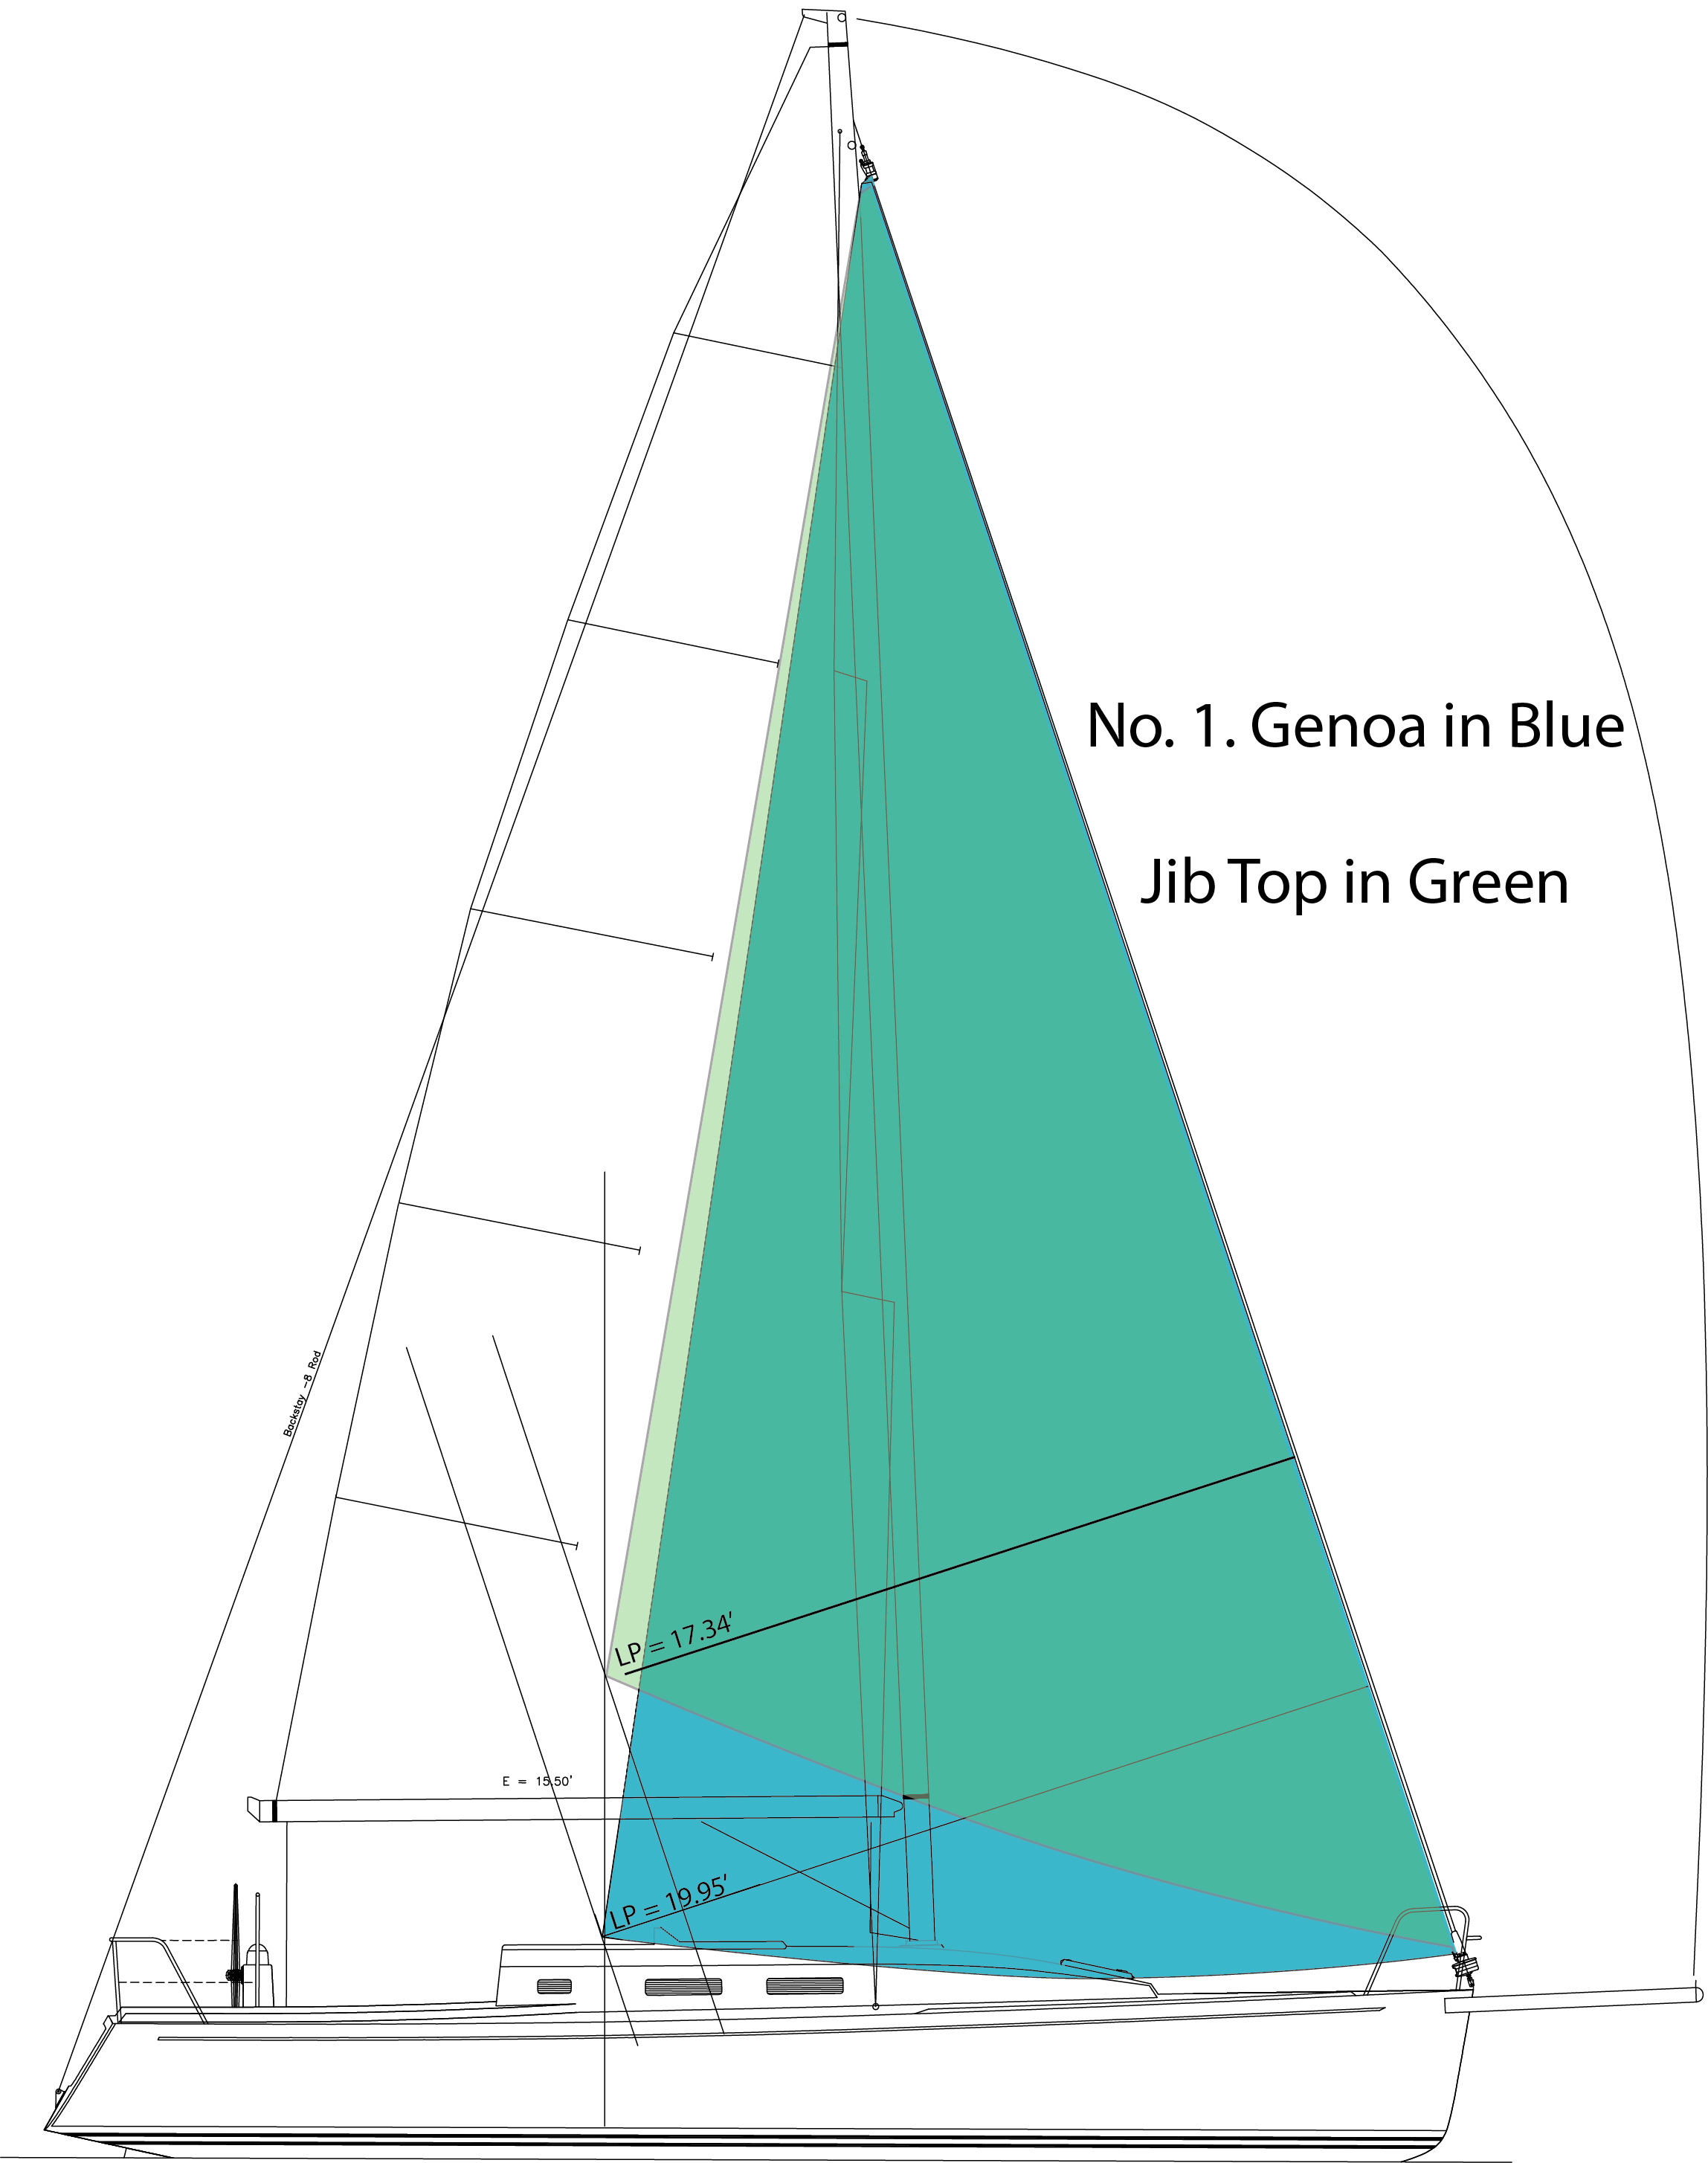 The Jib Top's high clew allows the sail to be eased out for reaching without twisting off the top excessively.